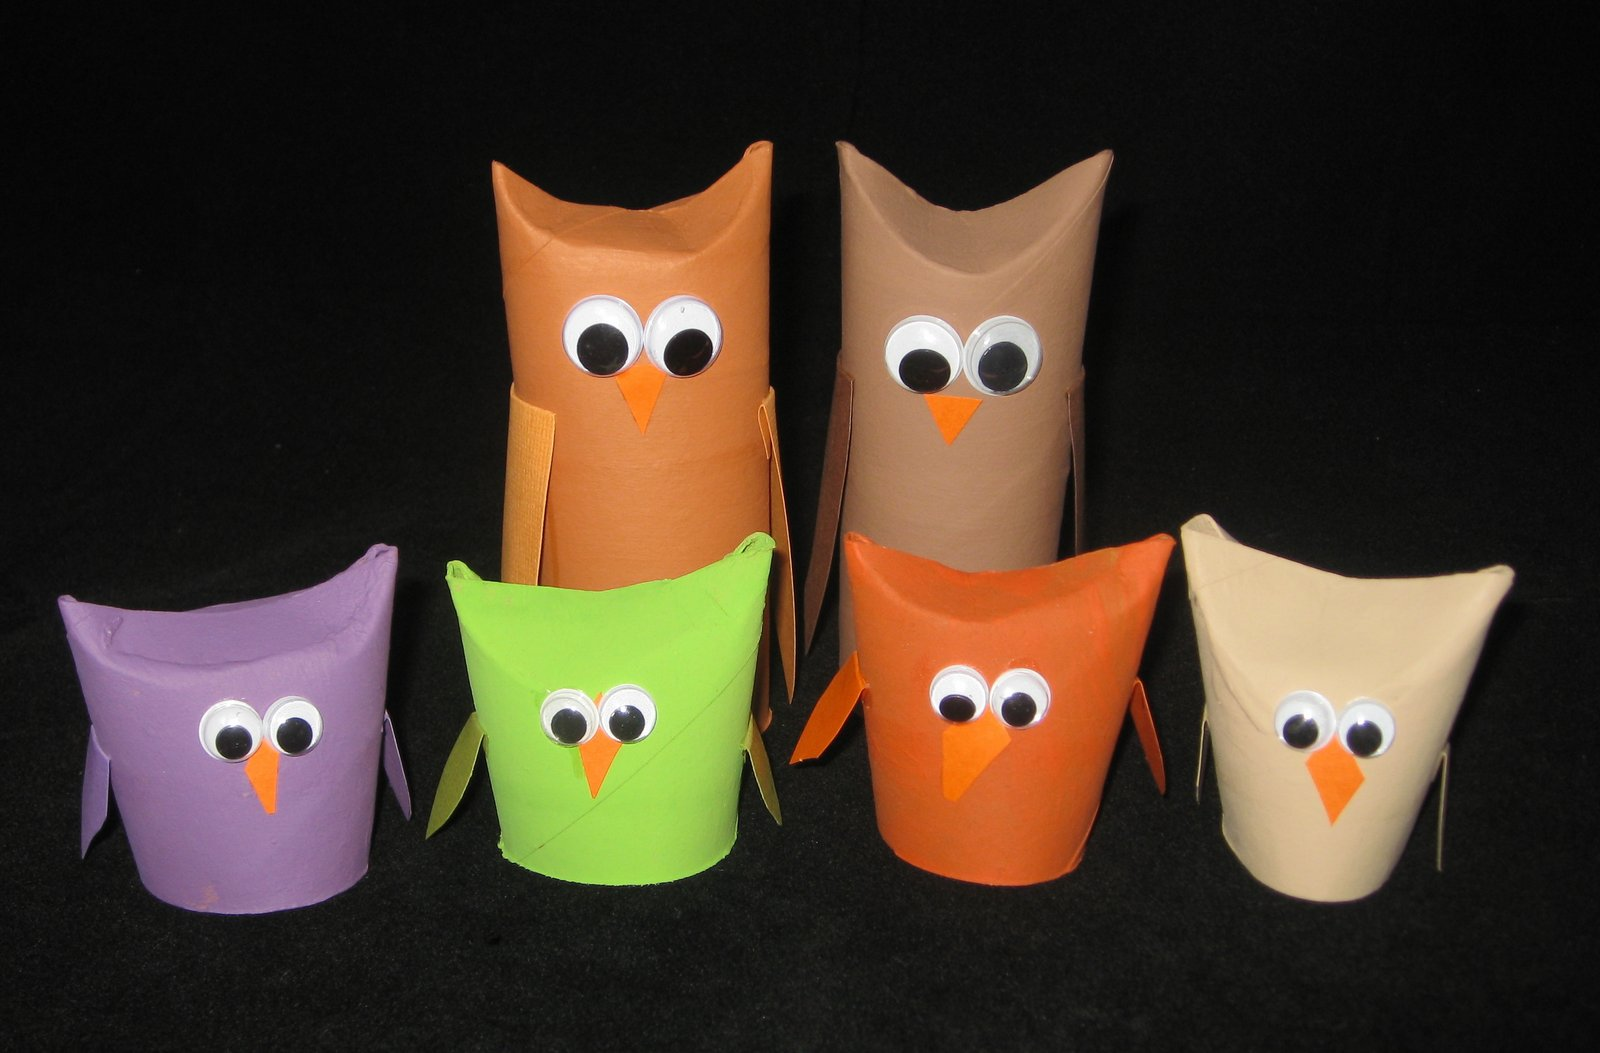 Cindy derosier my creative life toilet paper roll owls toilet paper roll owls jeuxipadfo Images